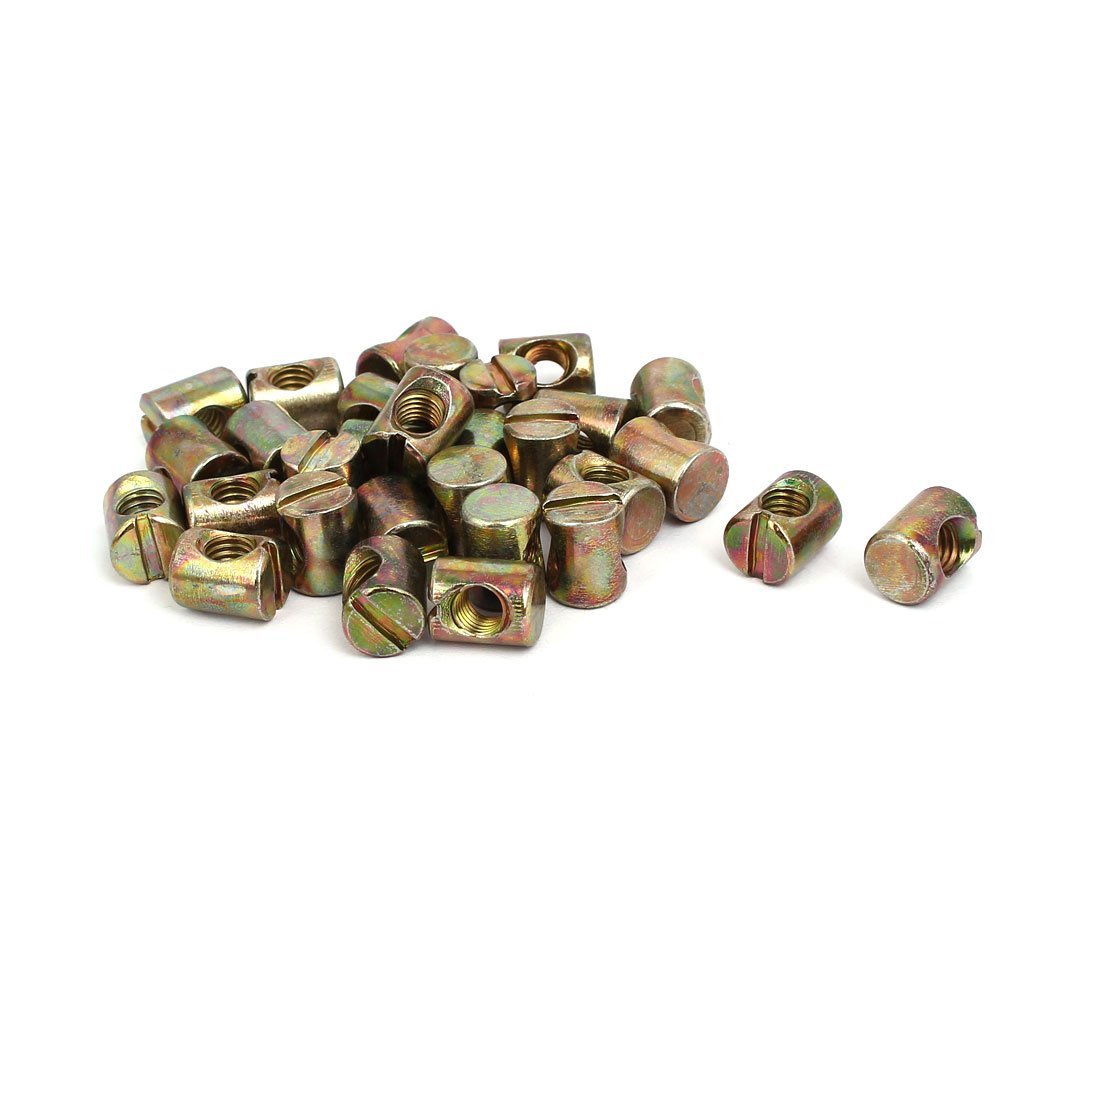 uxcell 30pcs M6x12mm Barrel Bolt Cross Dowel Slotted Furniture Nut for Beds Chairs